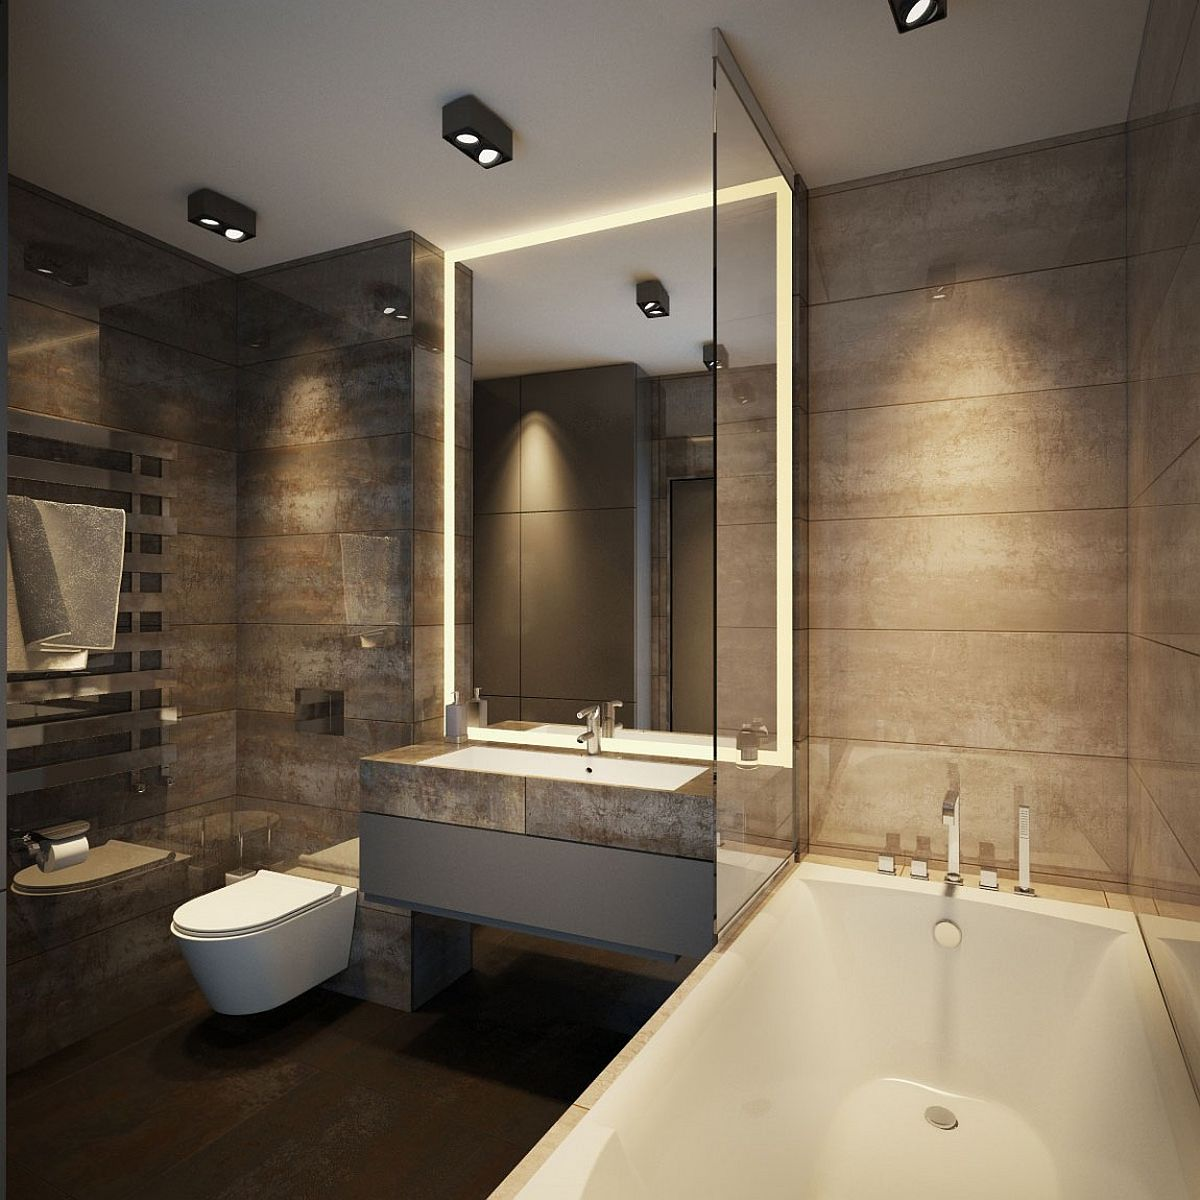 Apartment ernst in kiev inspired by posh hotel ambiance for Toilet interior ideas